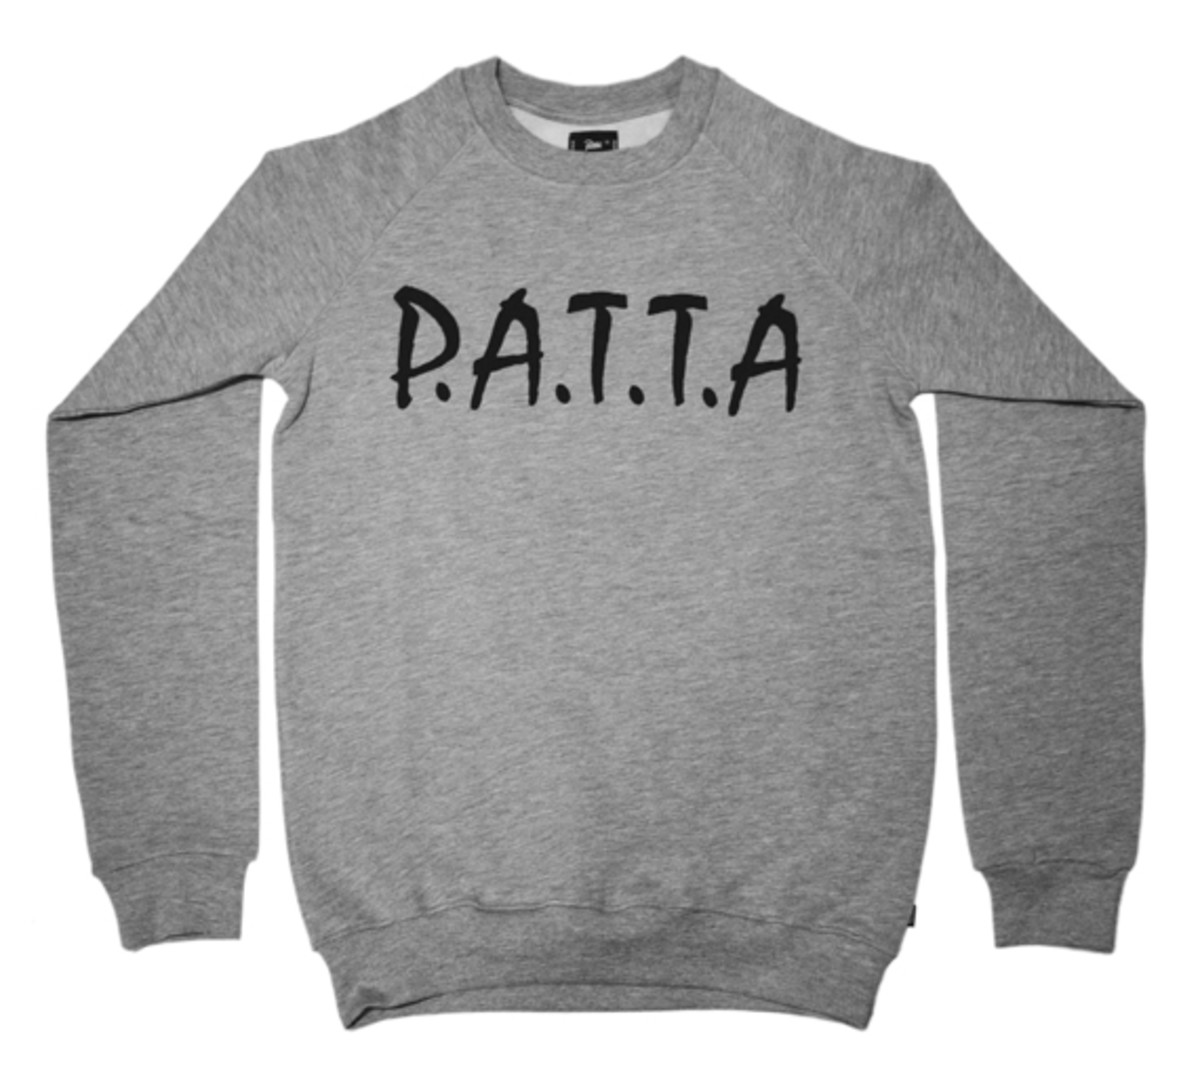 patta-fall-winter-2011-collection-01a